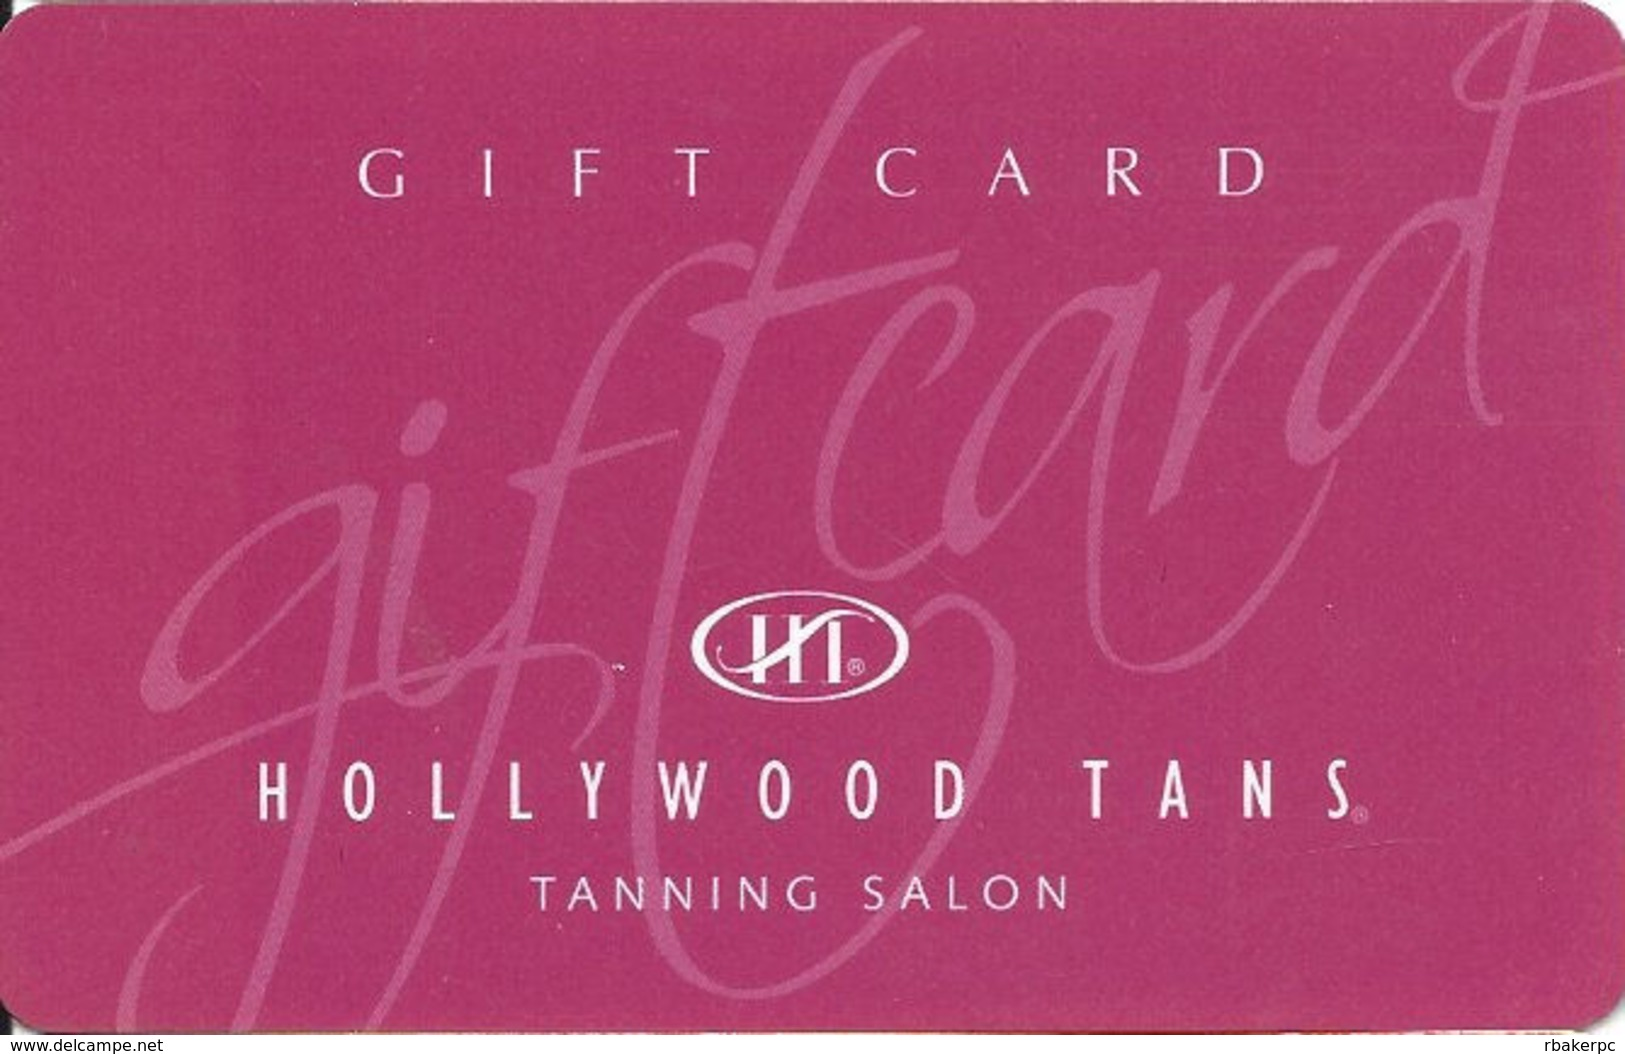 Hollywood Tans Gift Card - Gift Cards